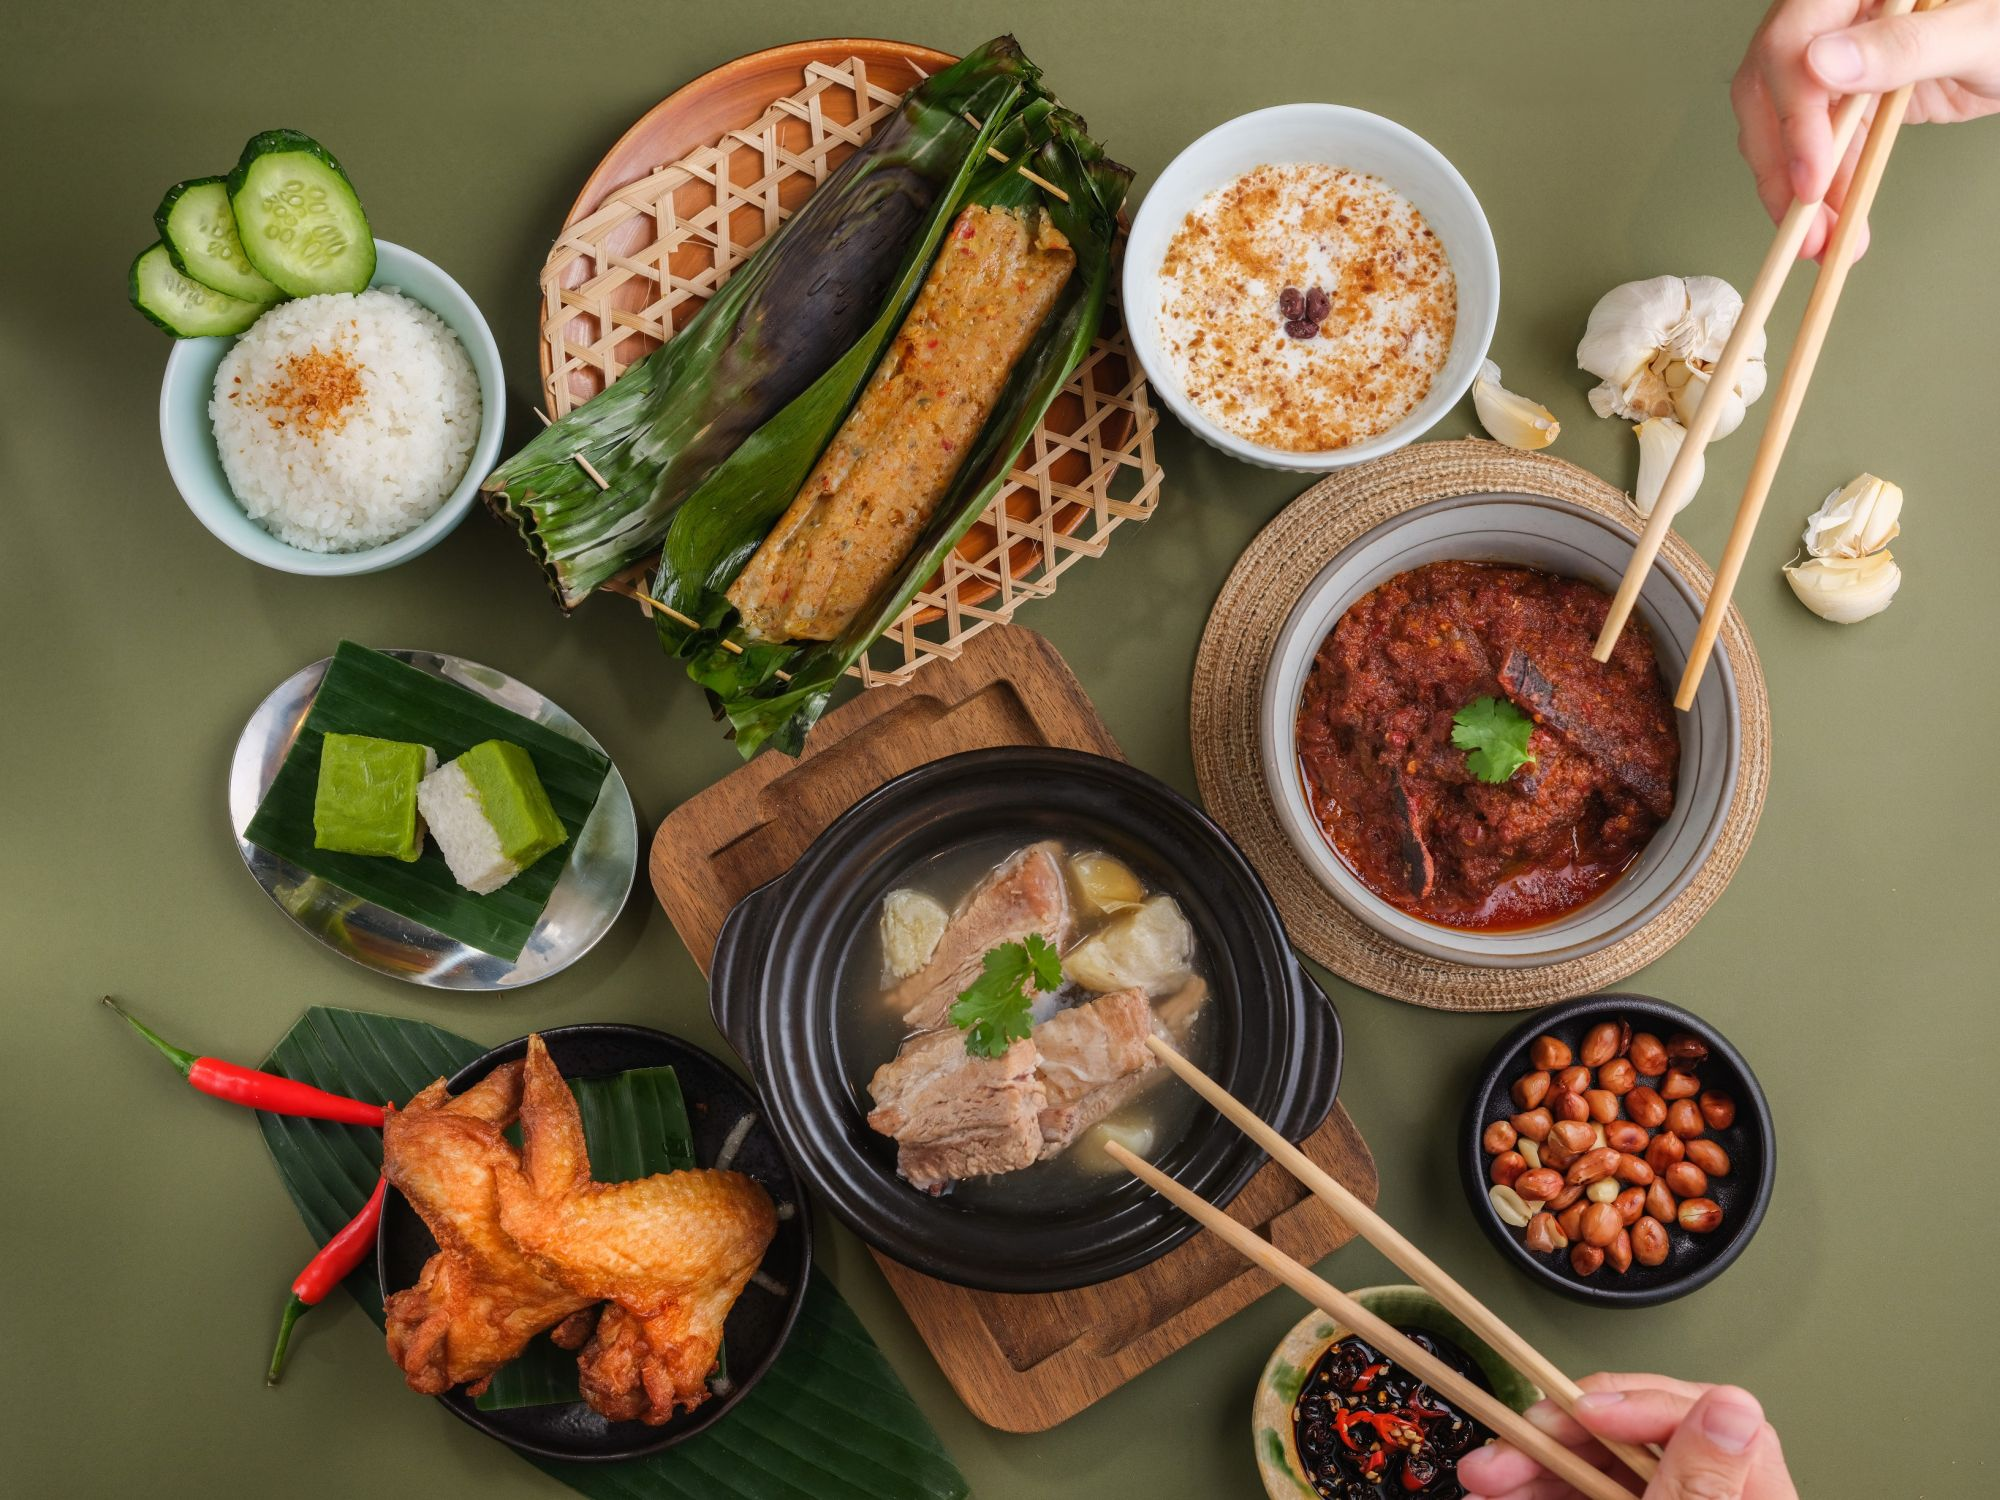 J.A.M, A New Hong Kong Food Hall By ZS Hospitality, Launches In Central